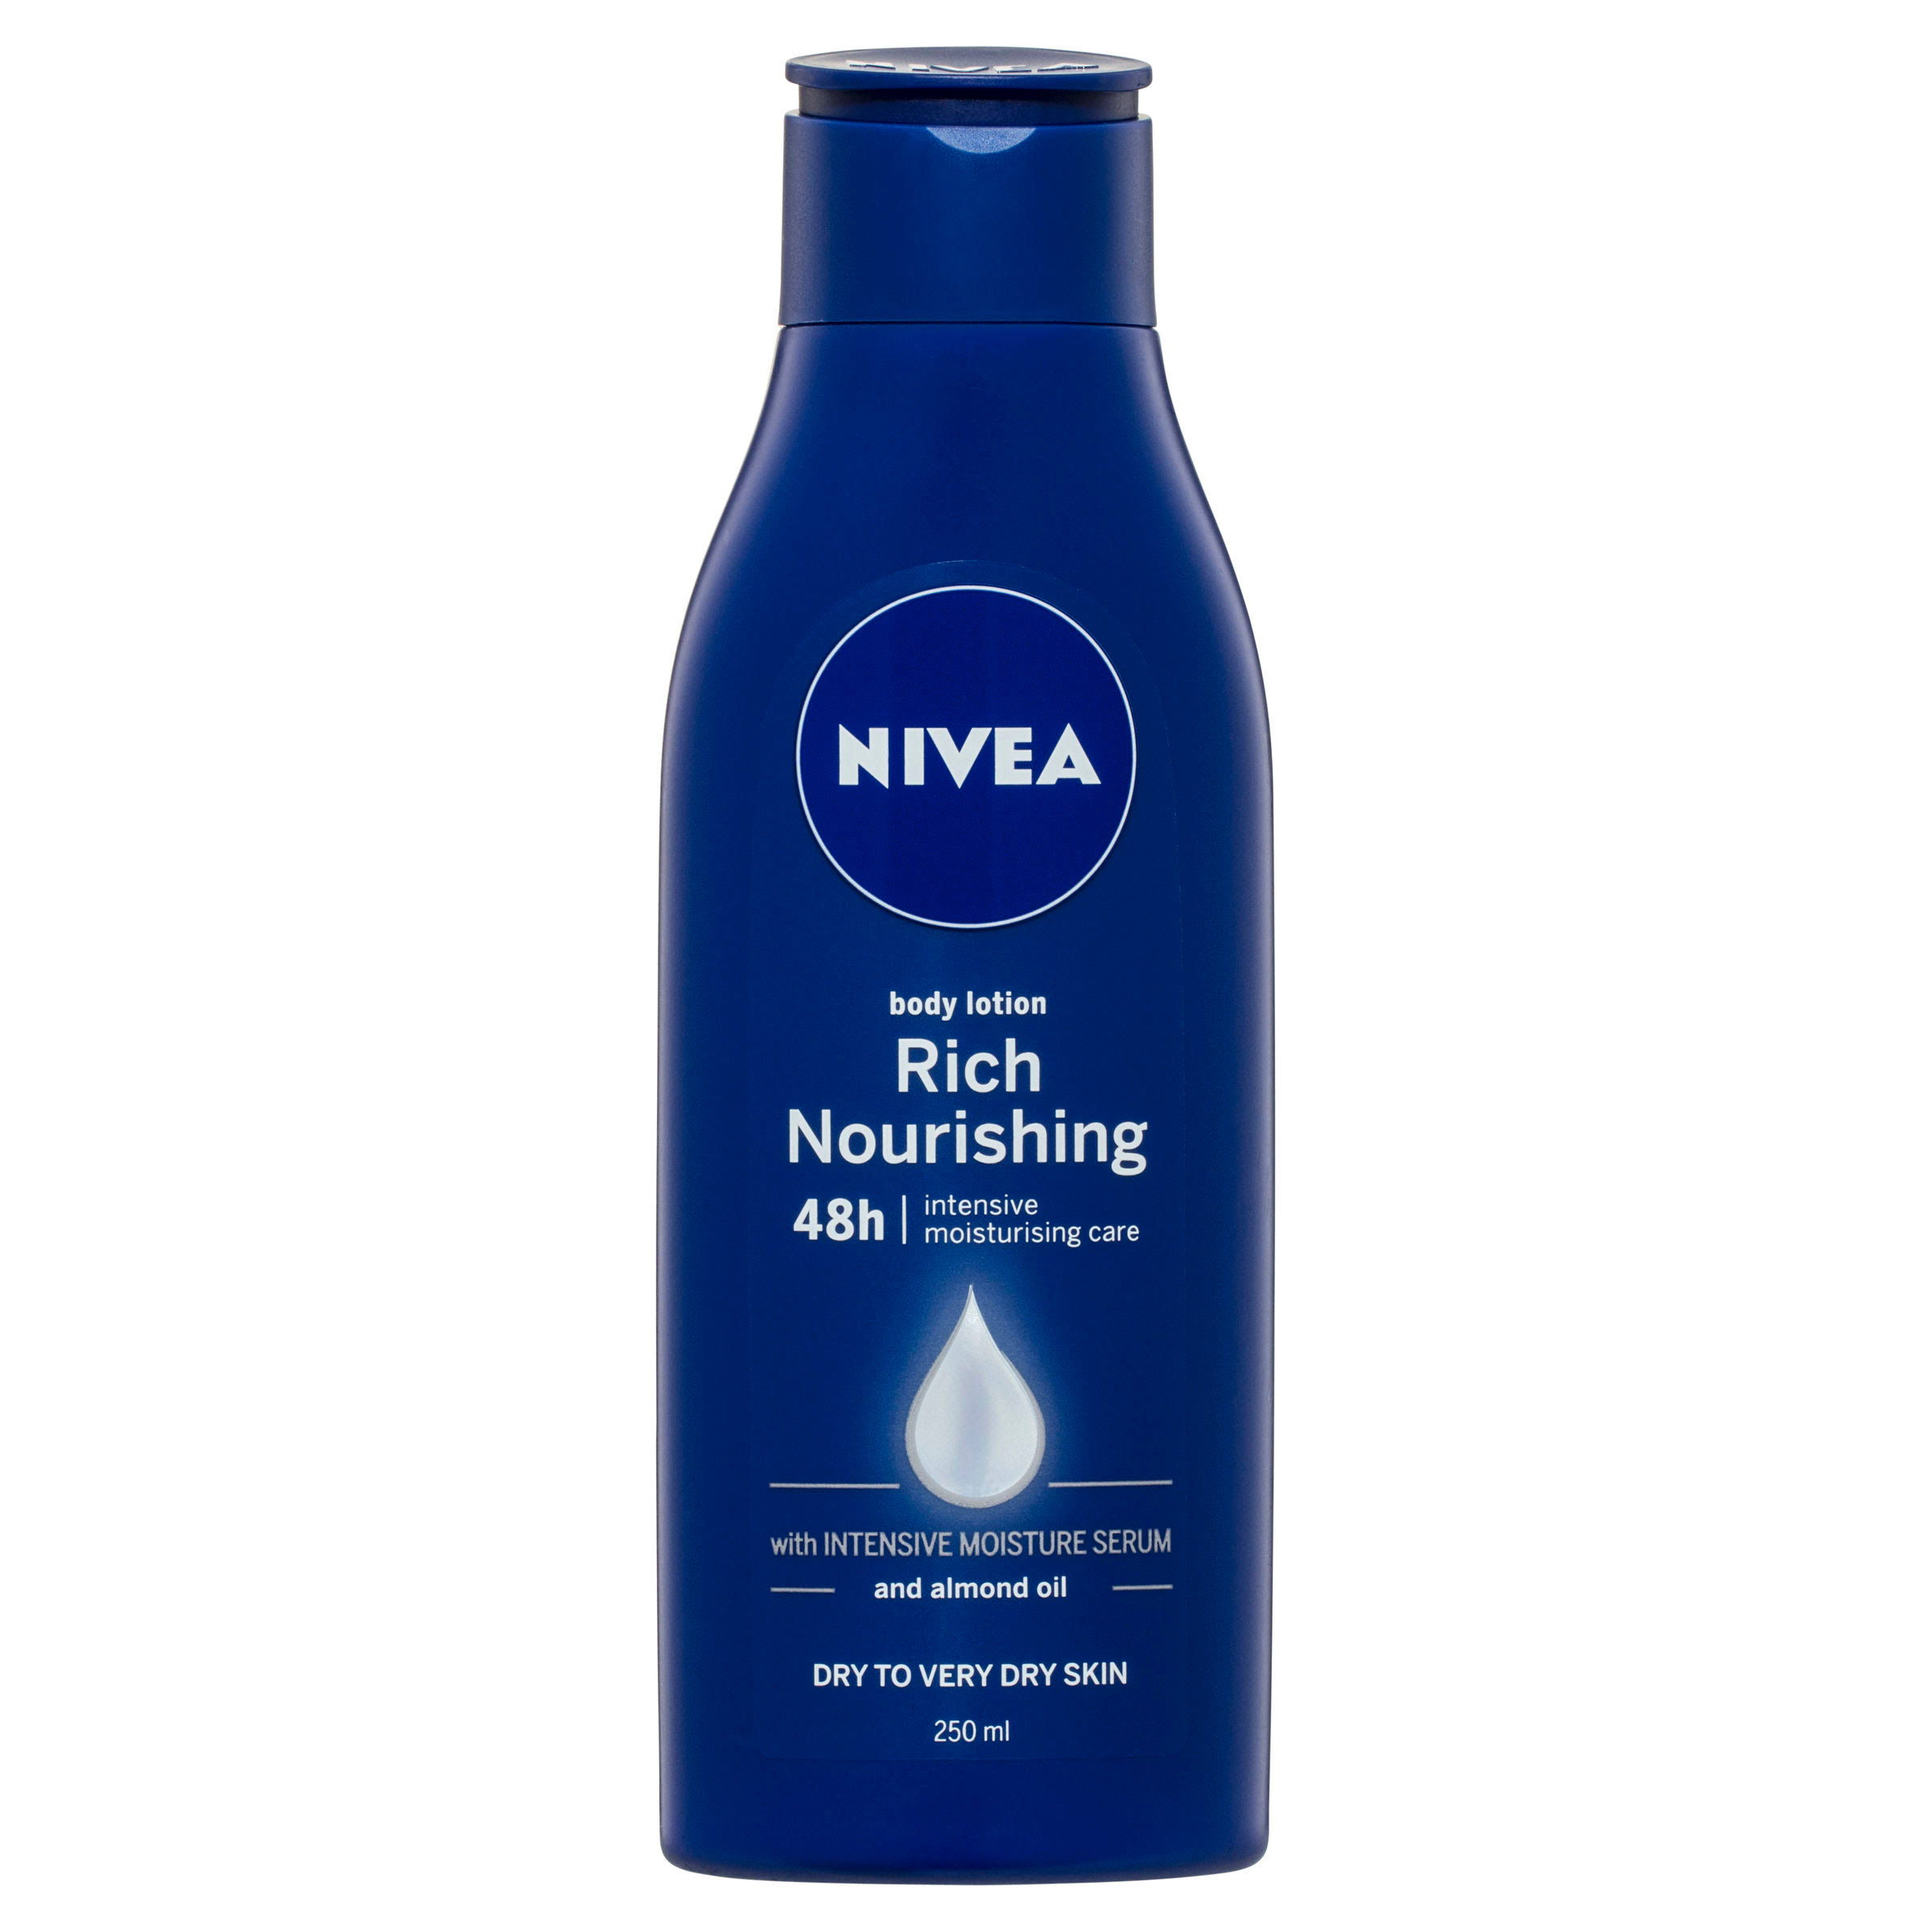 NIVEA Rich Nourishing Body Lotion - 250ml